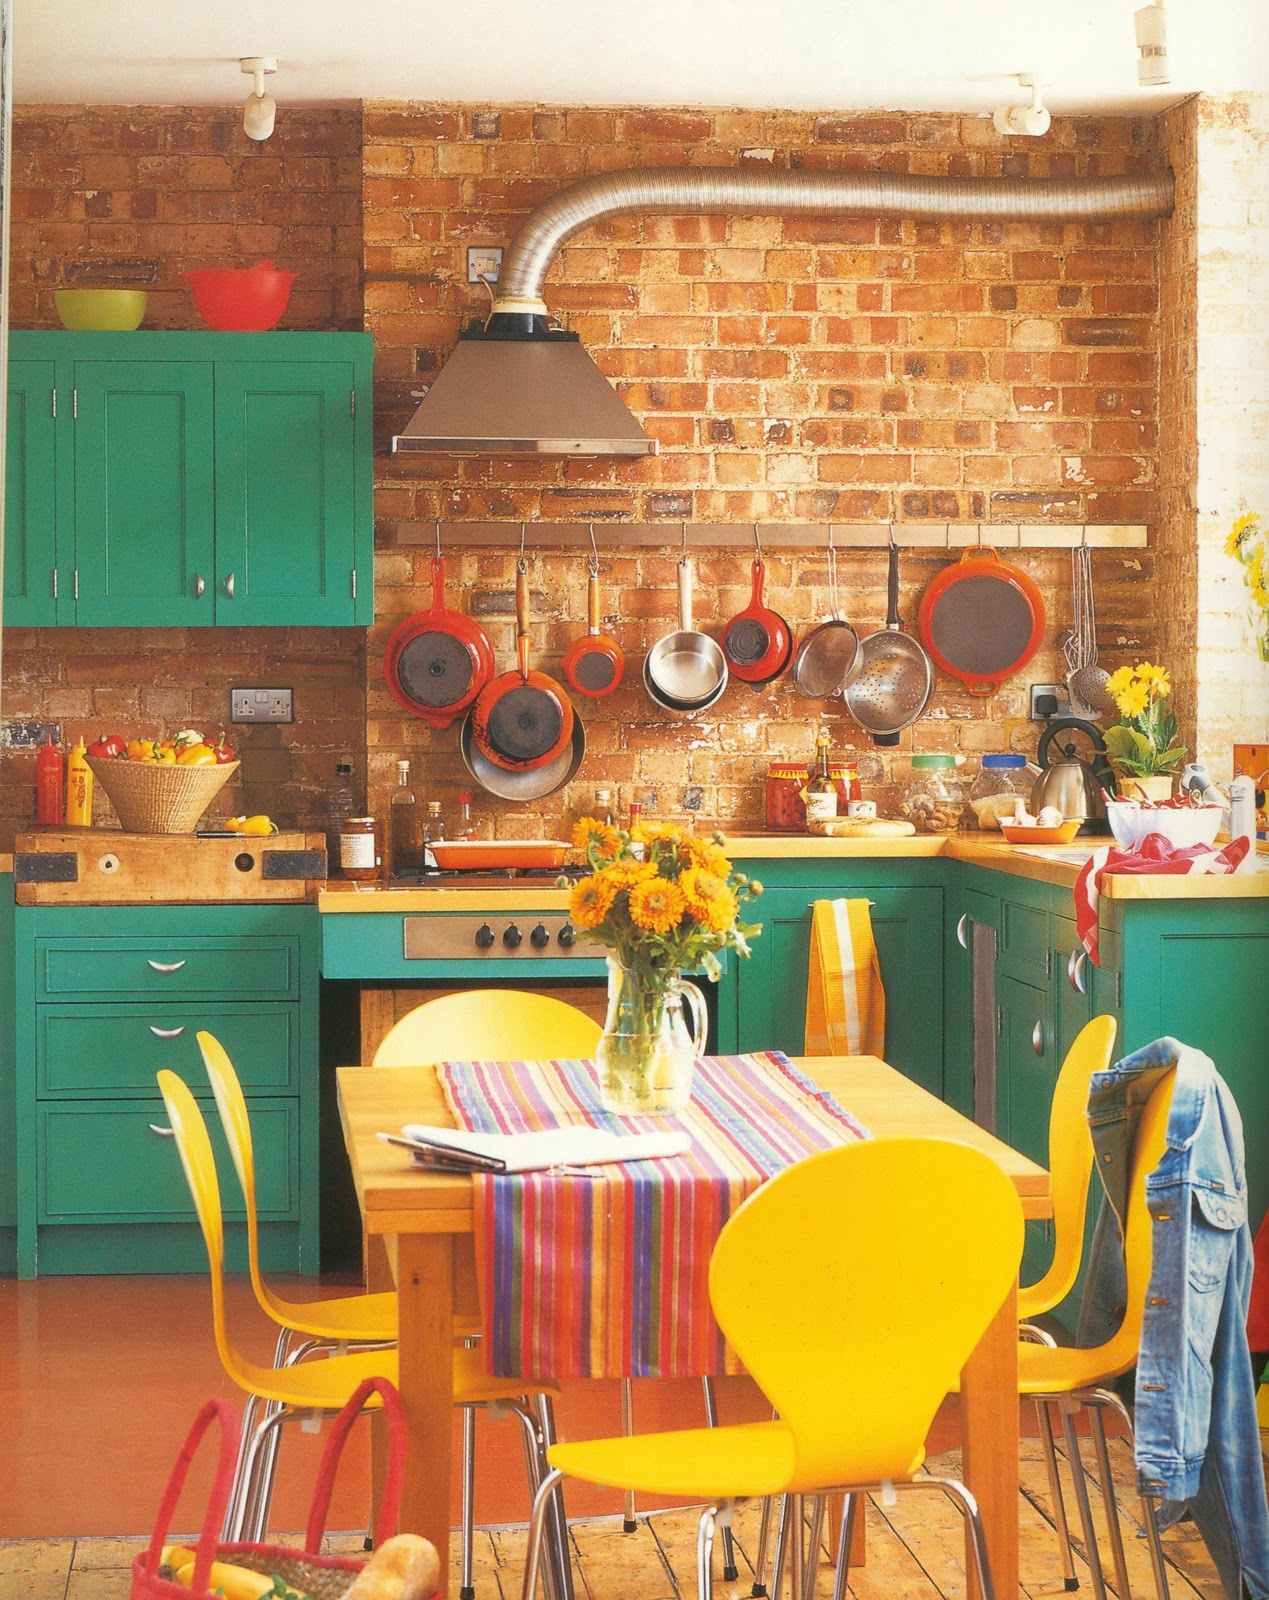 Bright Kitchen Enchanting Of Kitchen with Bright Color Photos